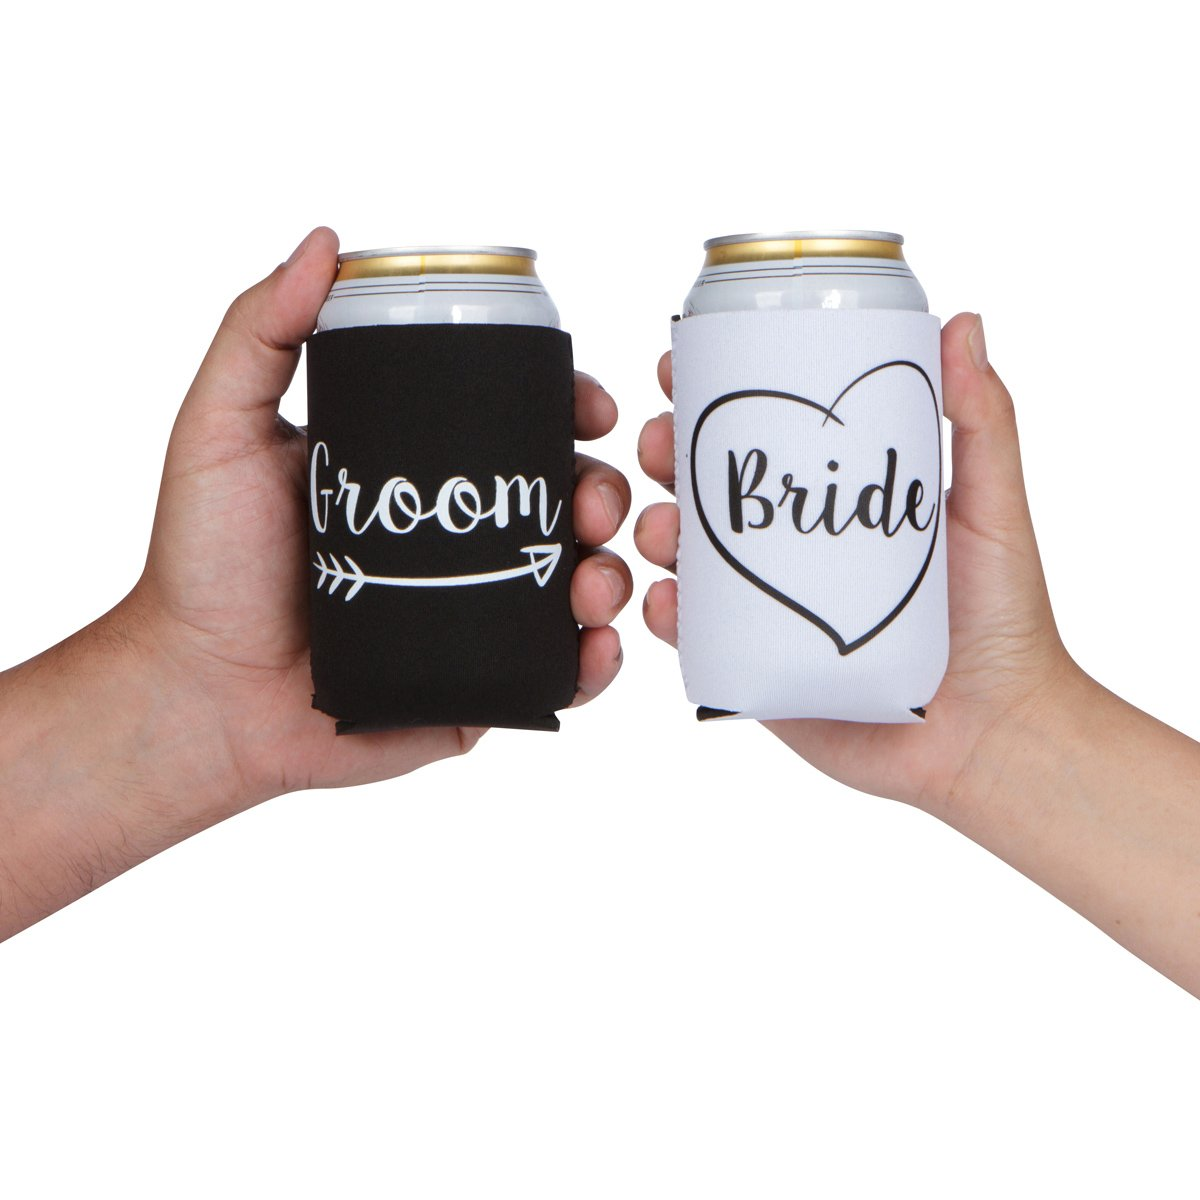 Cute Wedding Gifts - Bride and Groom Novelty Can Cooler Combo - Engagement Gift for Couples by The Plympton Company (Image #5)